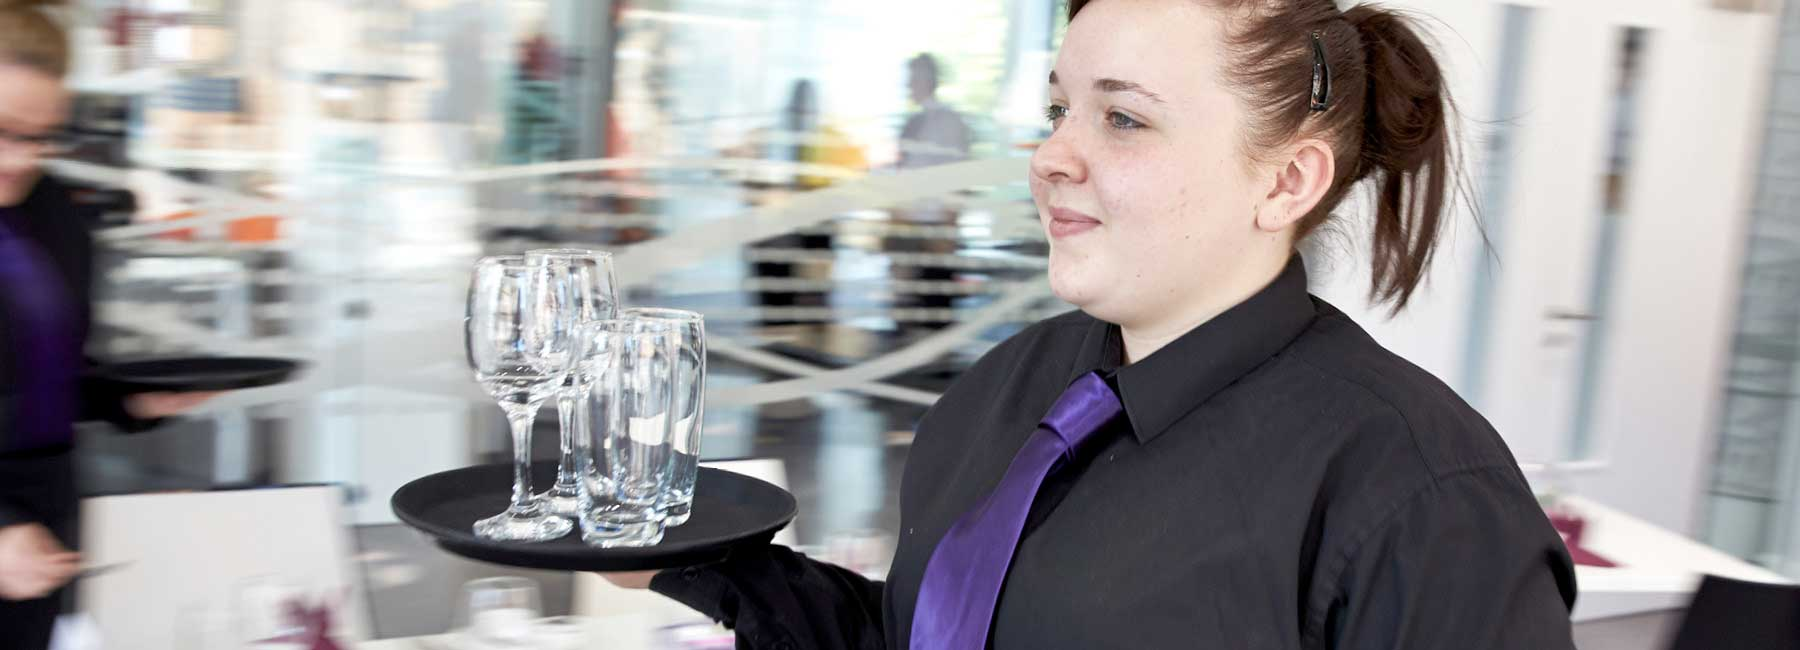 hospitality catering coursework